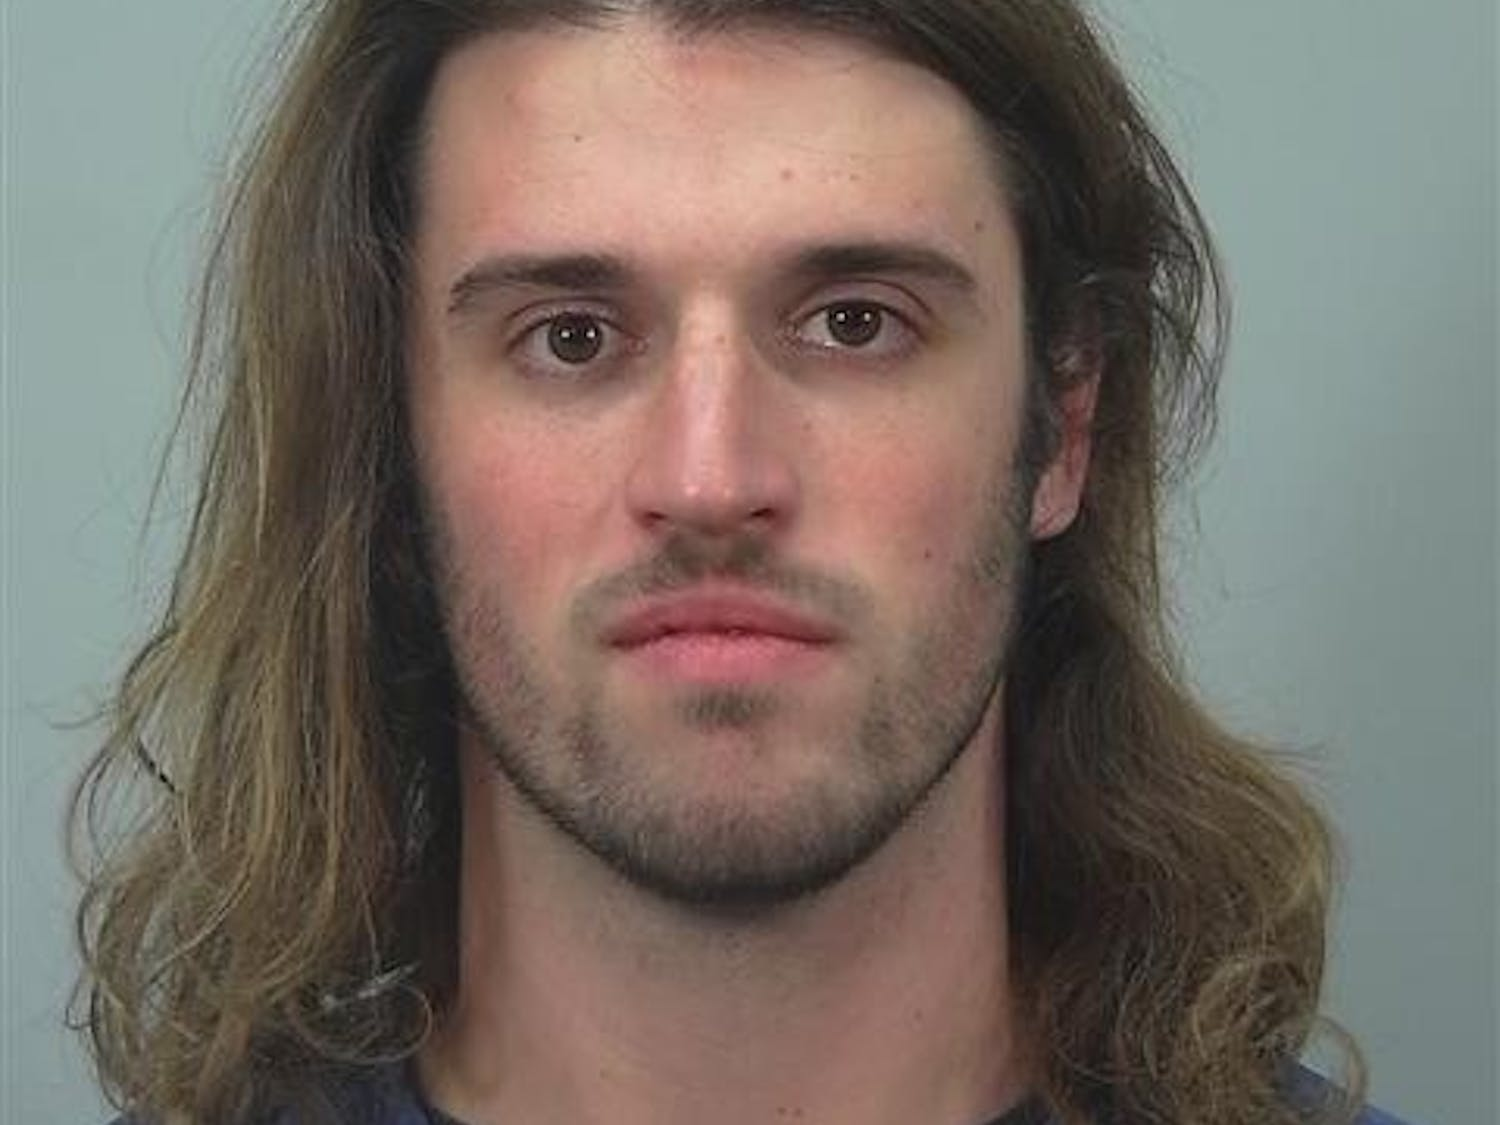 Six additional charges from five different women have been filed against suspended UW-Madison student Alec Cook, bringing his total number of criminal charges to 21.